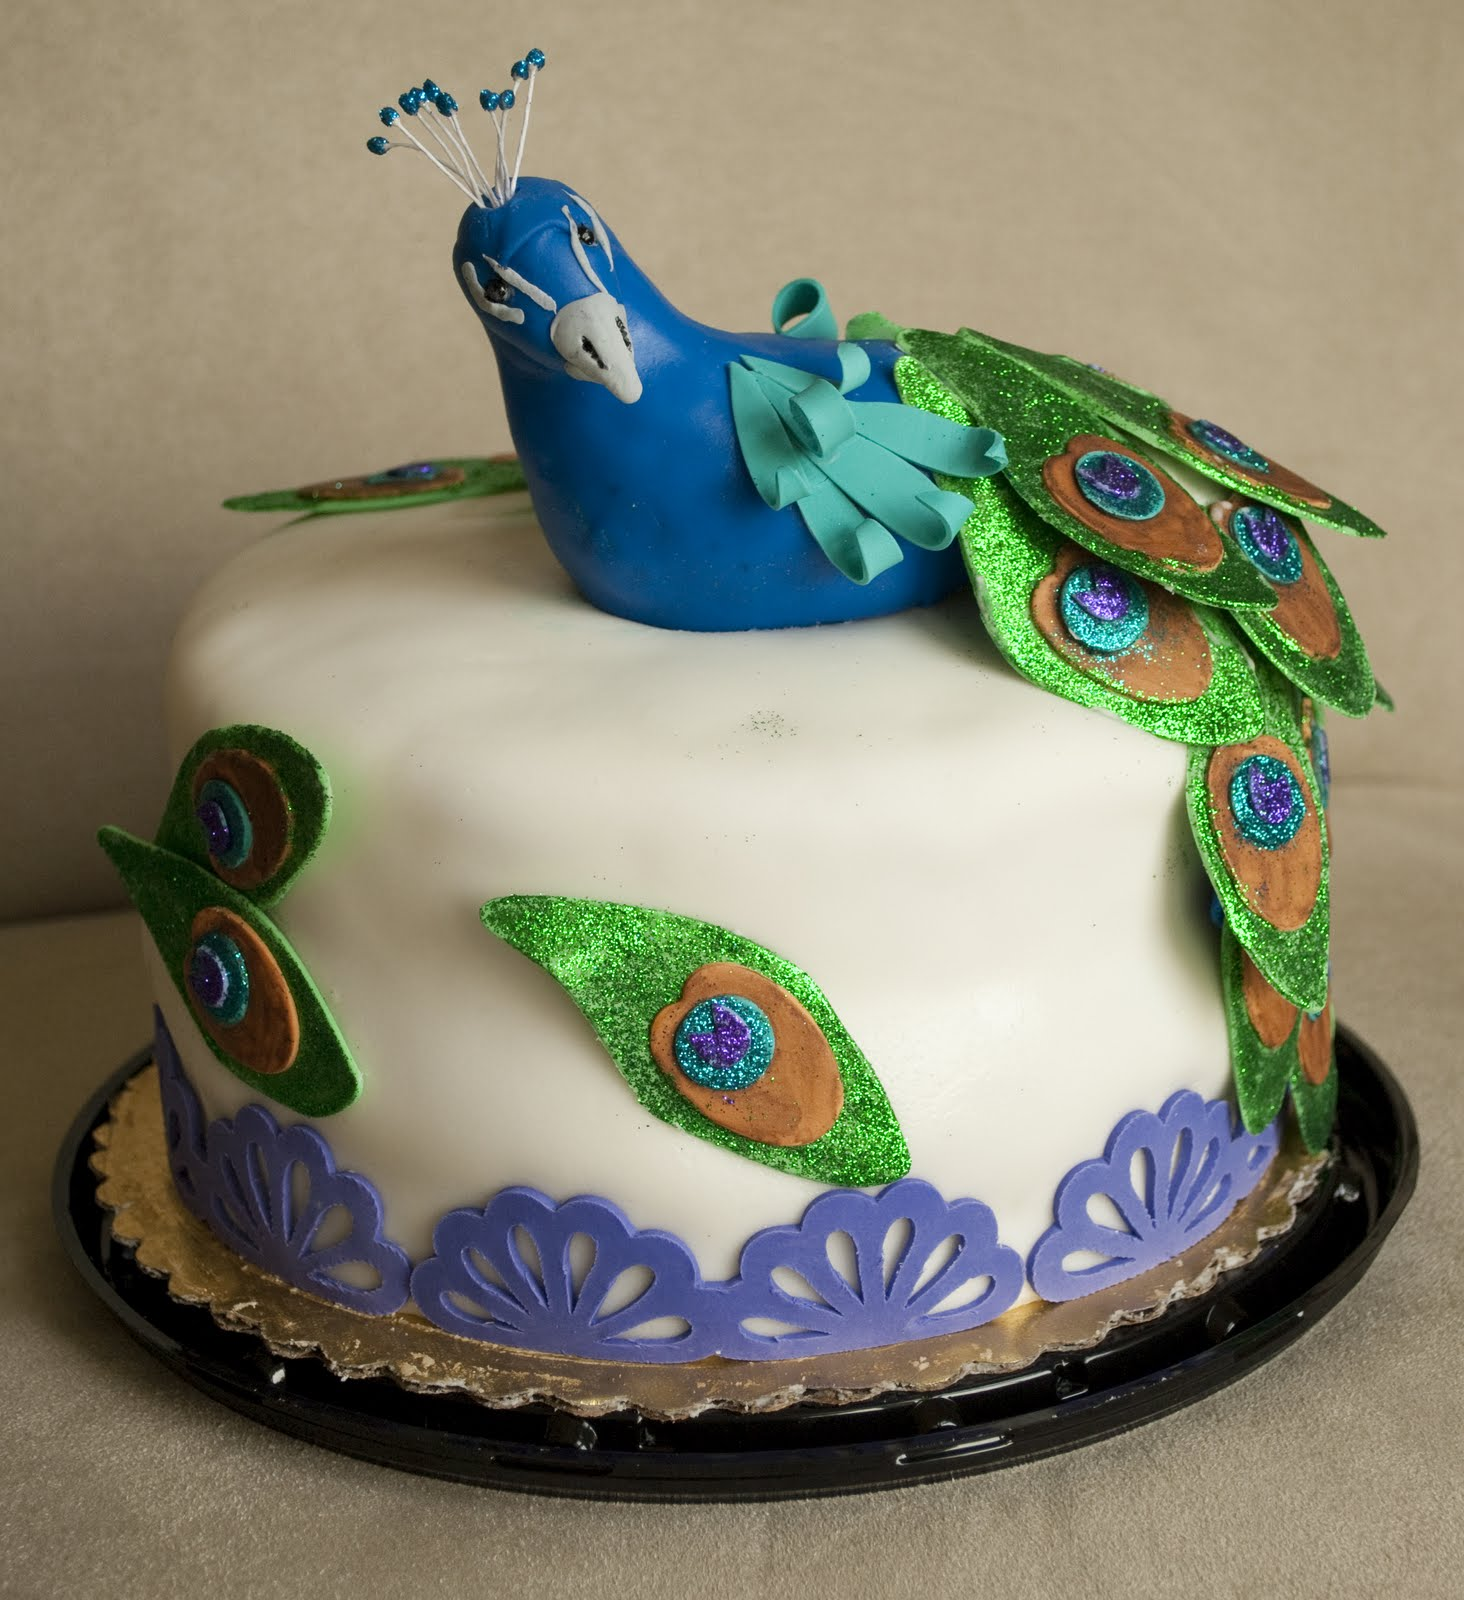 Pin Peacock Cake Wedding Blue Green Teal on Pinterest